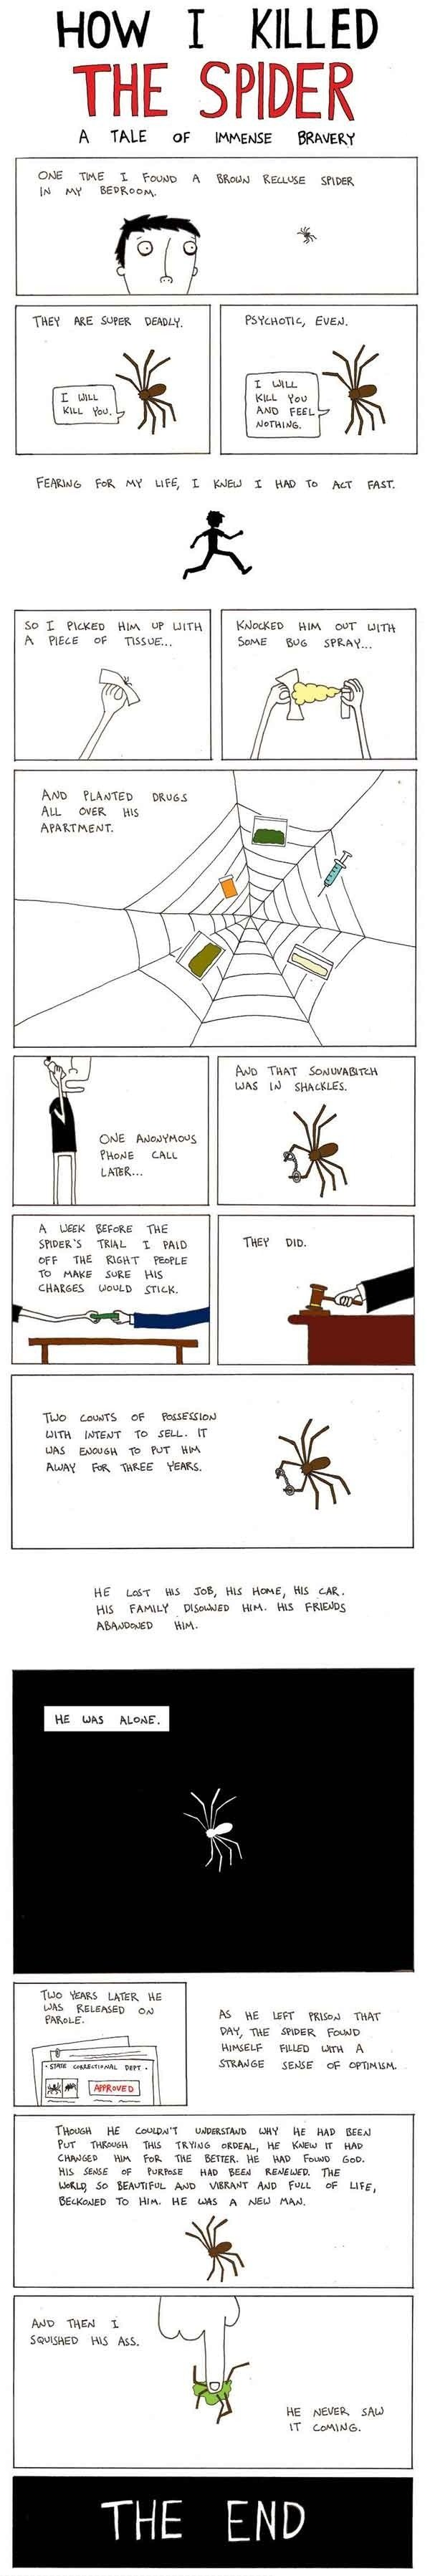 A Tale Of Immense Bravery. How I killed the spider. I haven't seen it on FJ, so I brought it to you. Merry christmas everyone . HOW I KILLED TIE SPIDER A TALE O